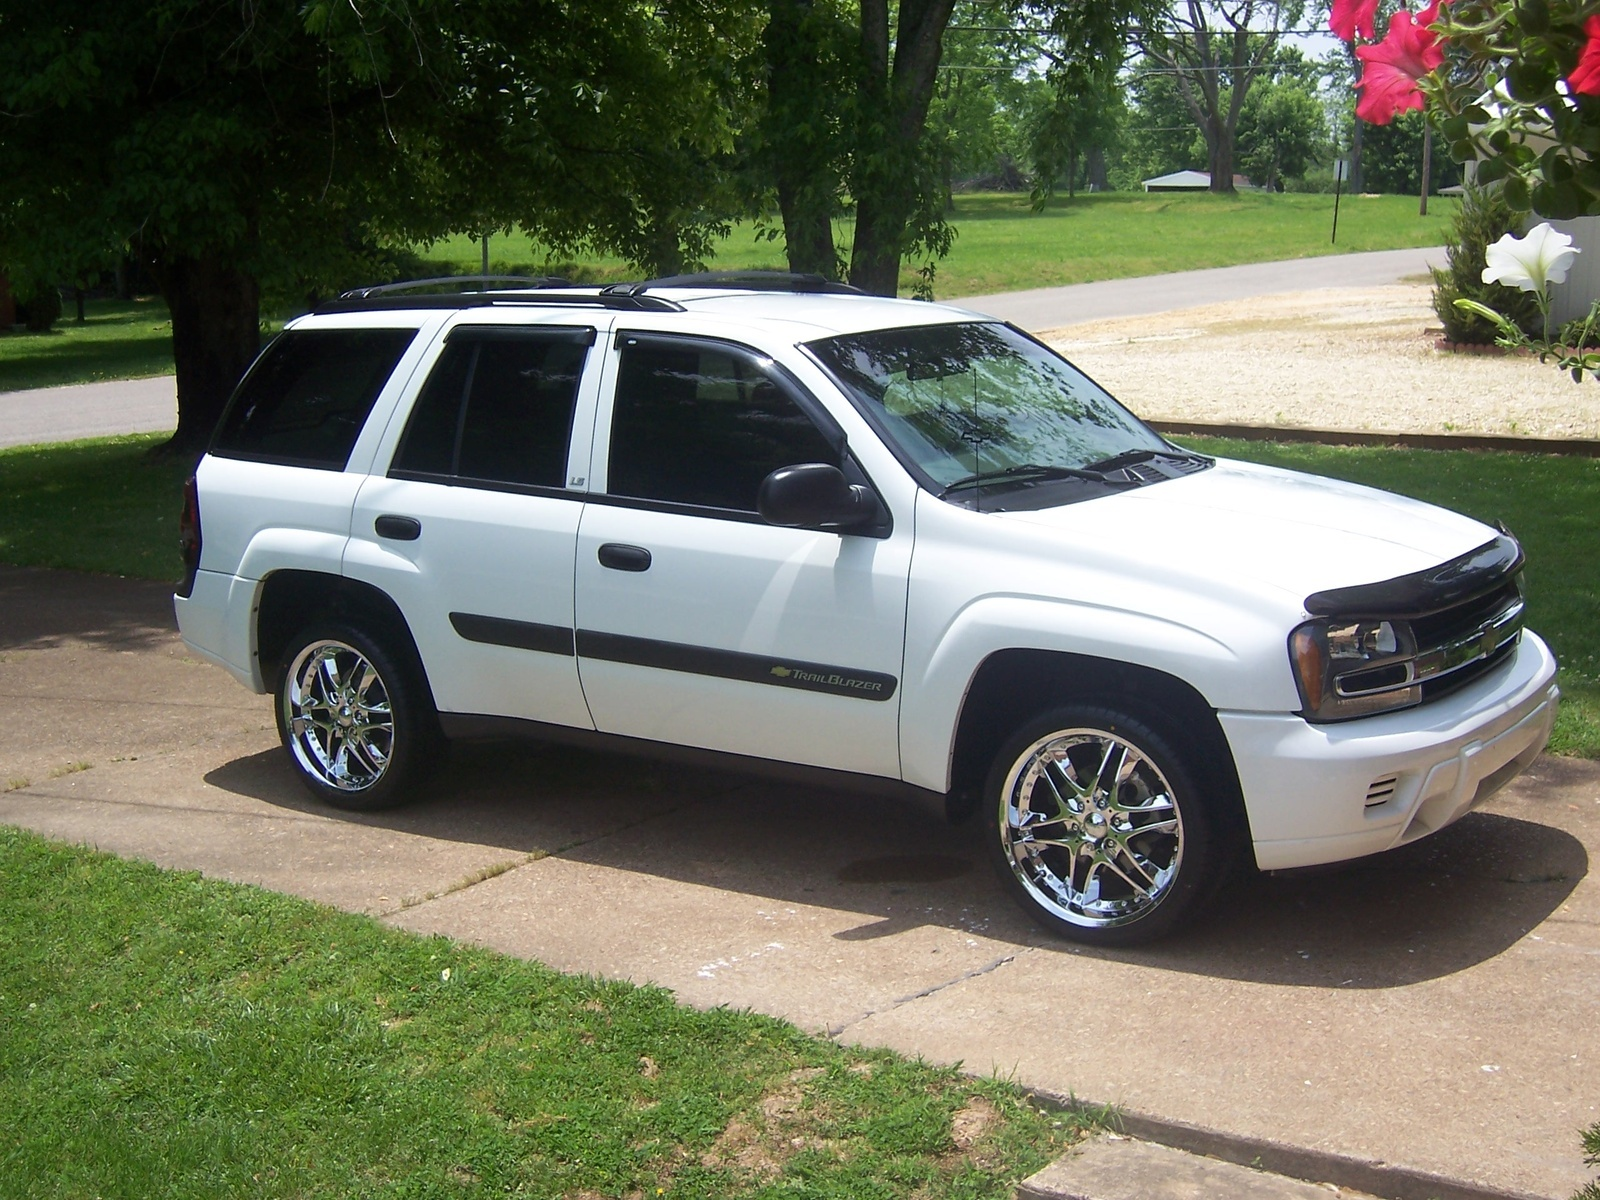 White 2002 Chevy Impala >> 2003 Chevrolet TrailBlazer - Overview - CarGurus